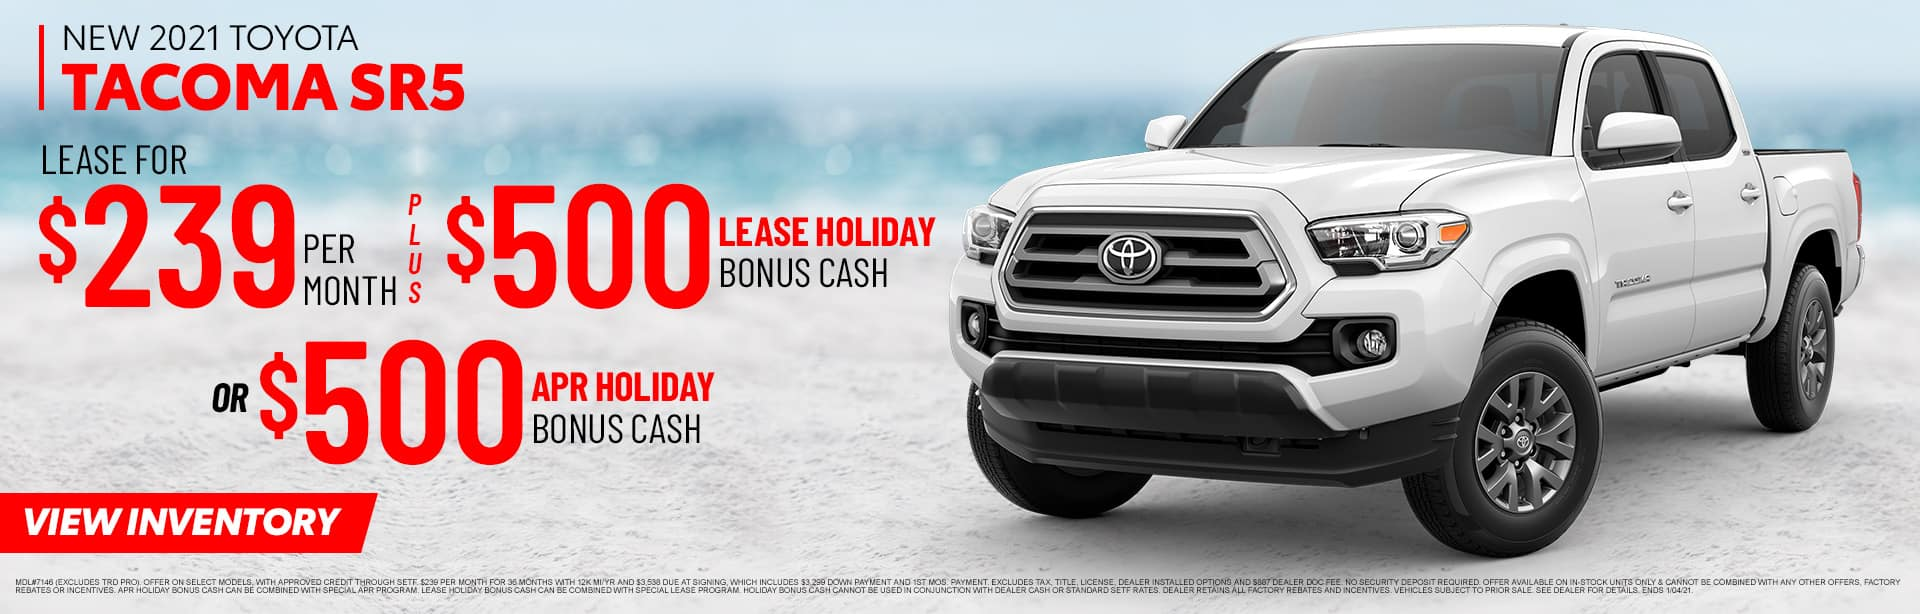 New 2021 Toyota Tacoma SR5 | Sales NOW at Toyota of Fort Walton Beach